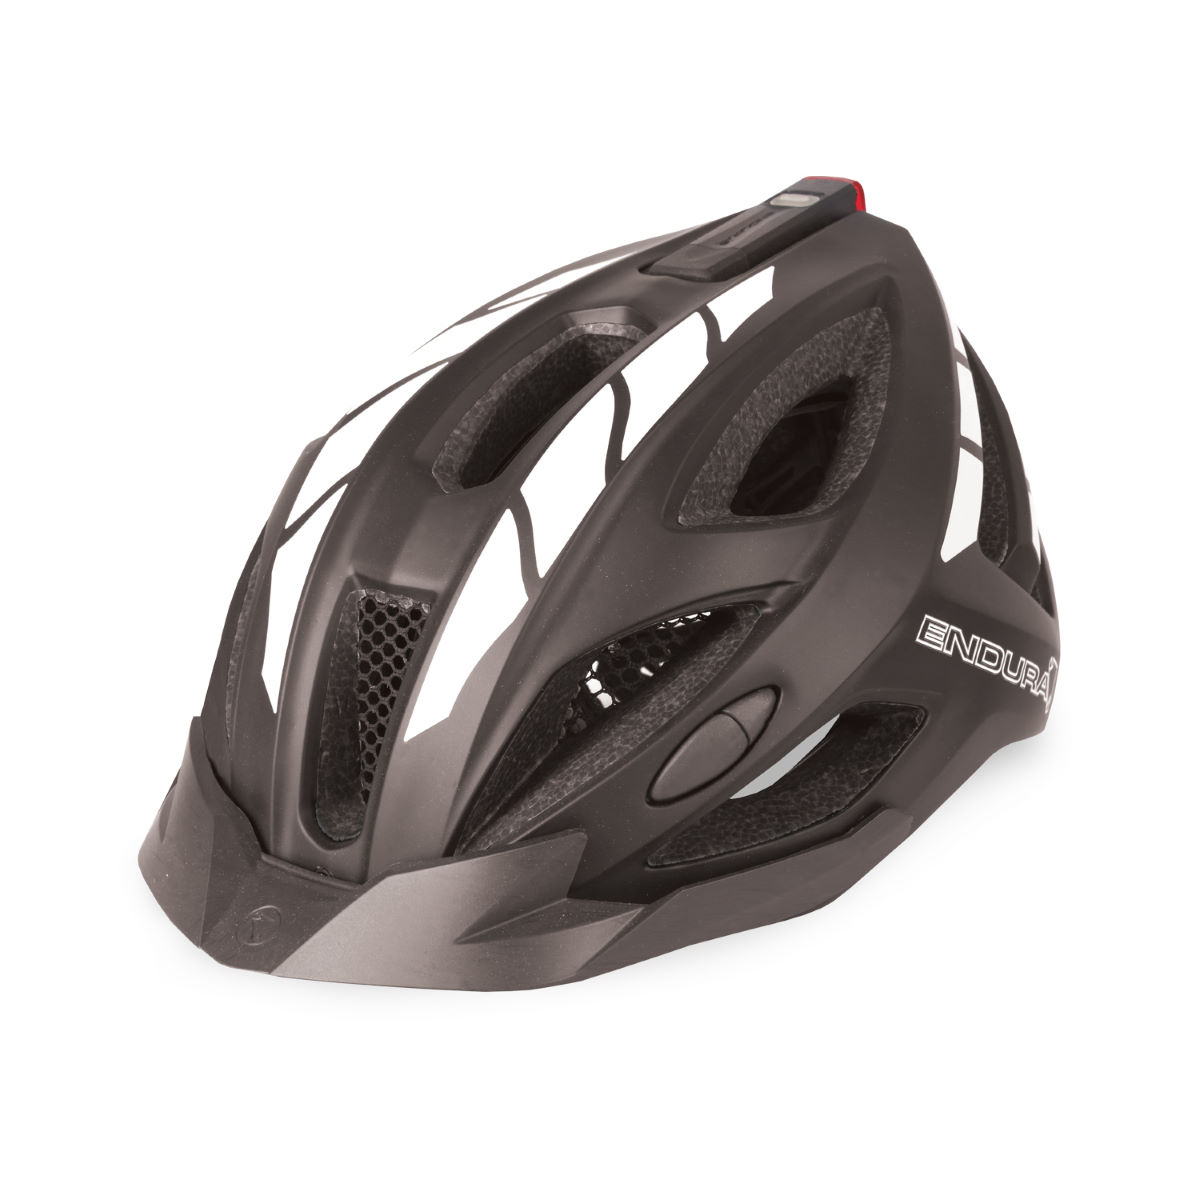 Casco Endura Luminite - Cascos